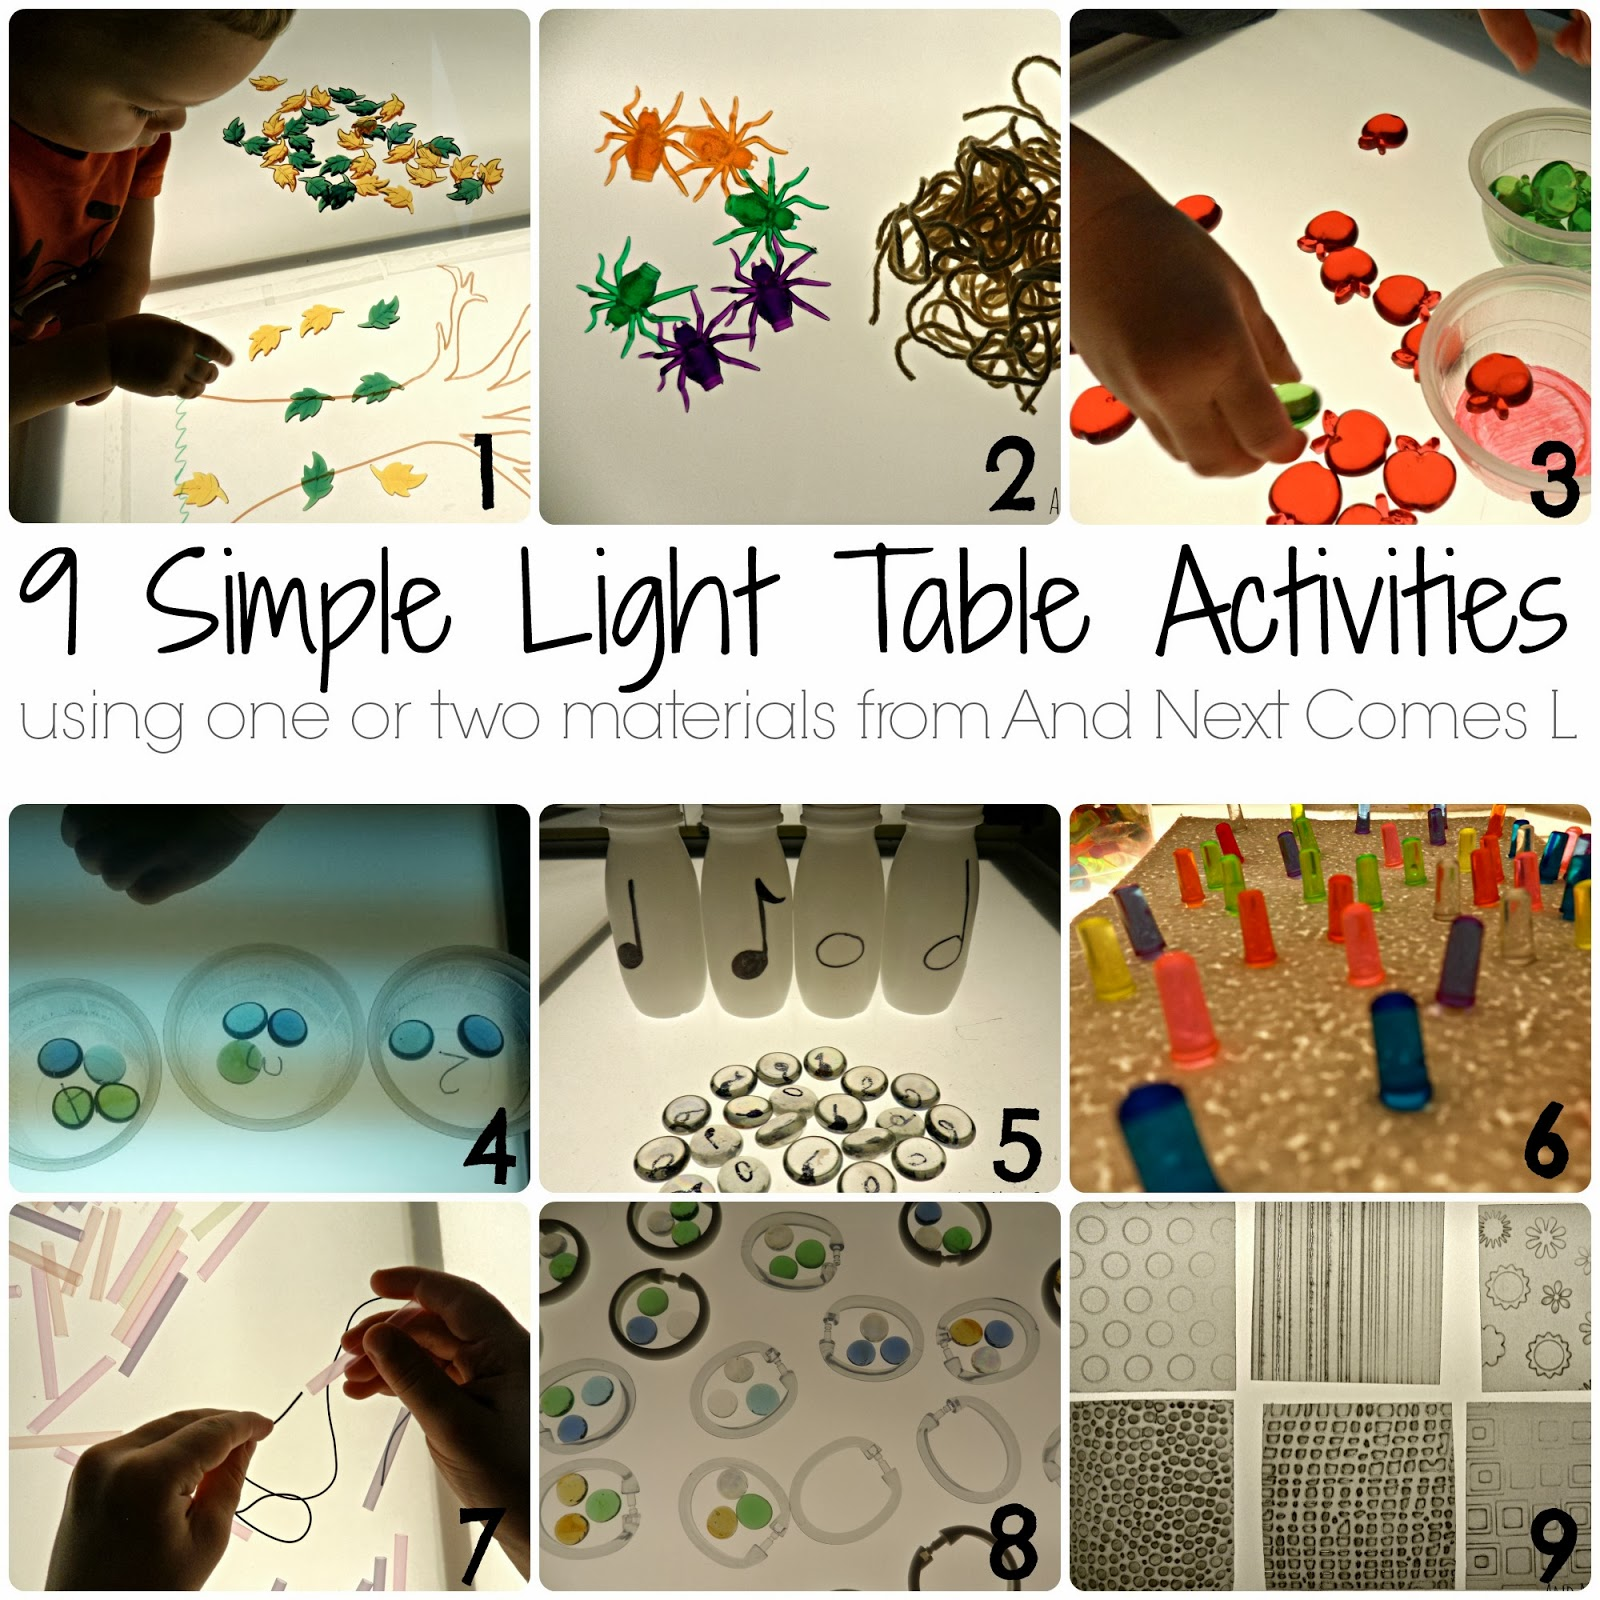 50 Simple Play Amp Learning Ideas For Kids Using One Or Two